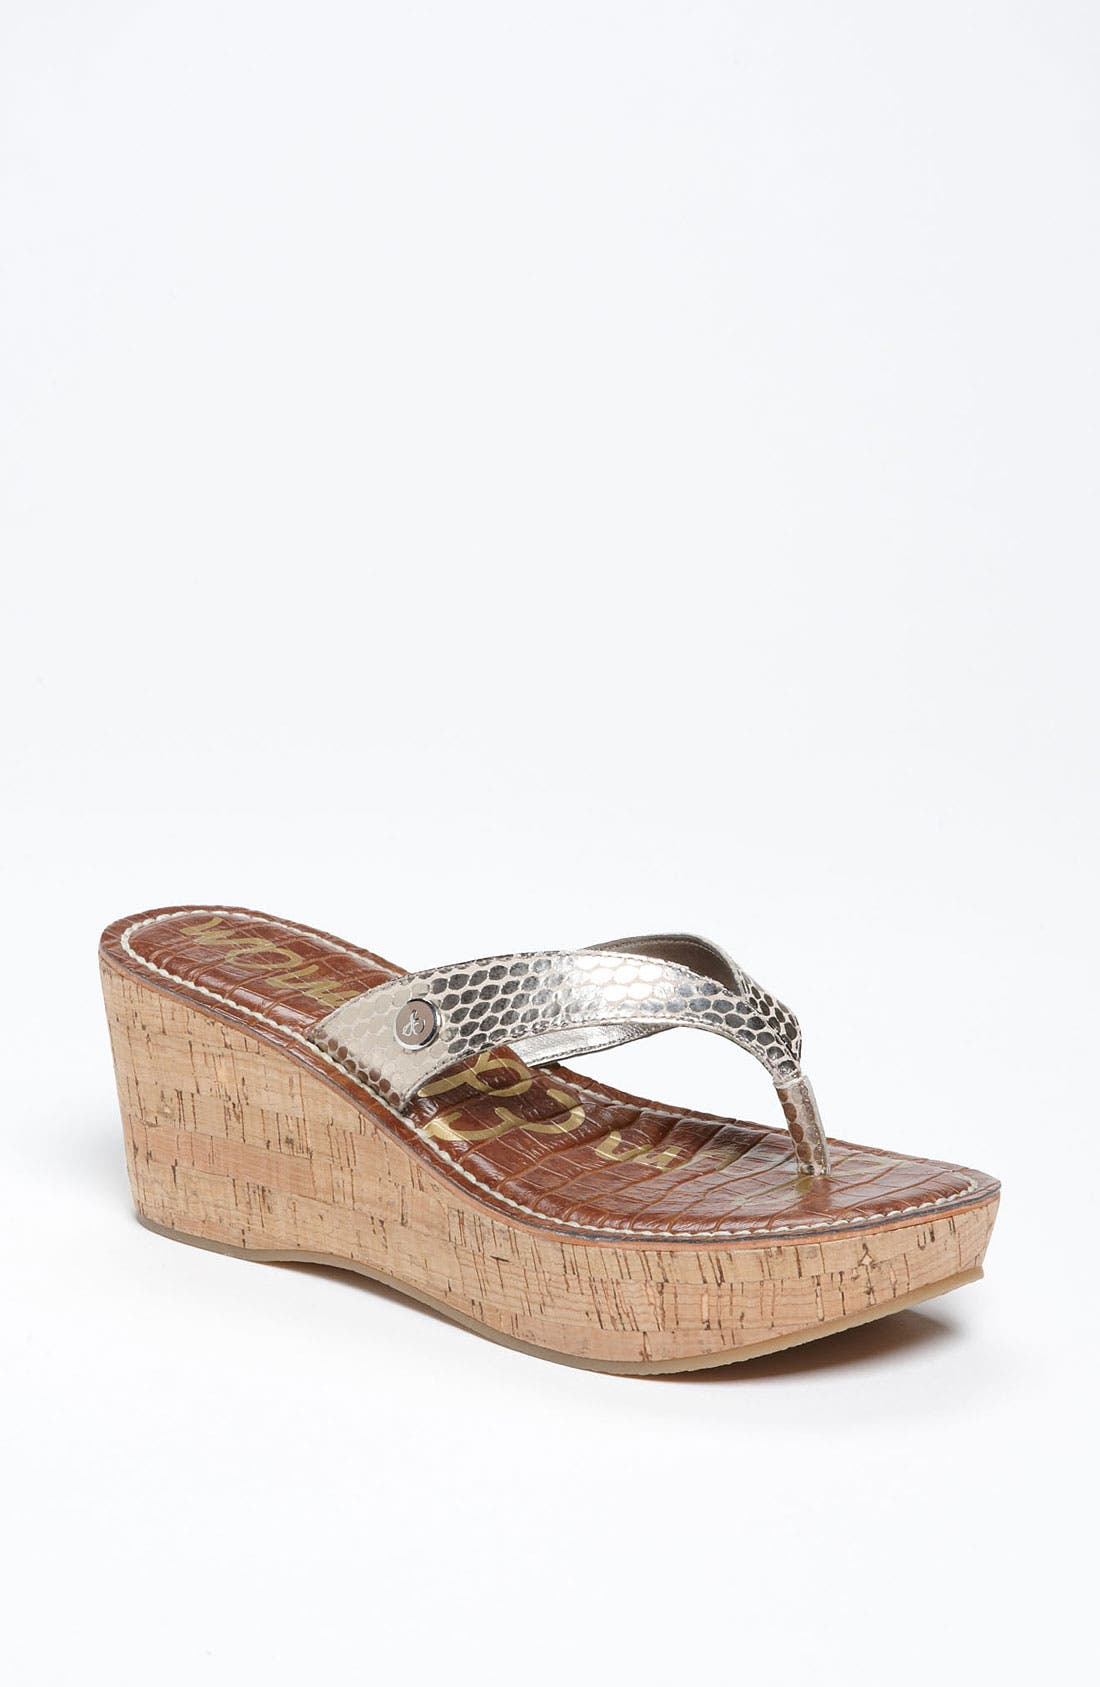 Main Image - Sam Edelman 'Romy' Wedge Sandal (Women)